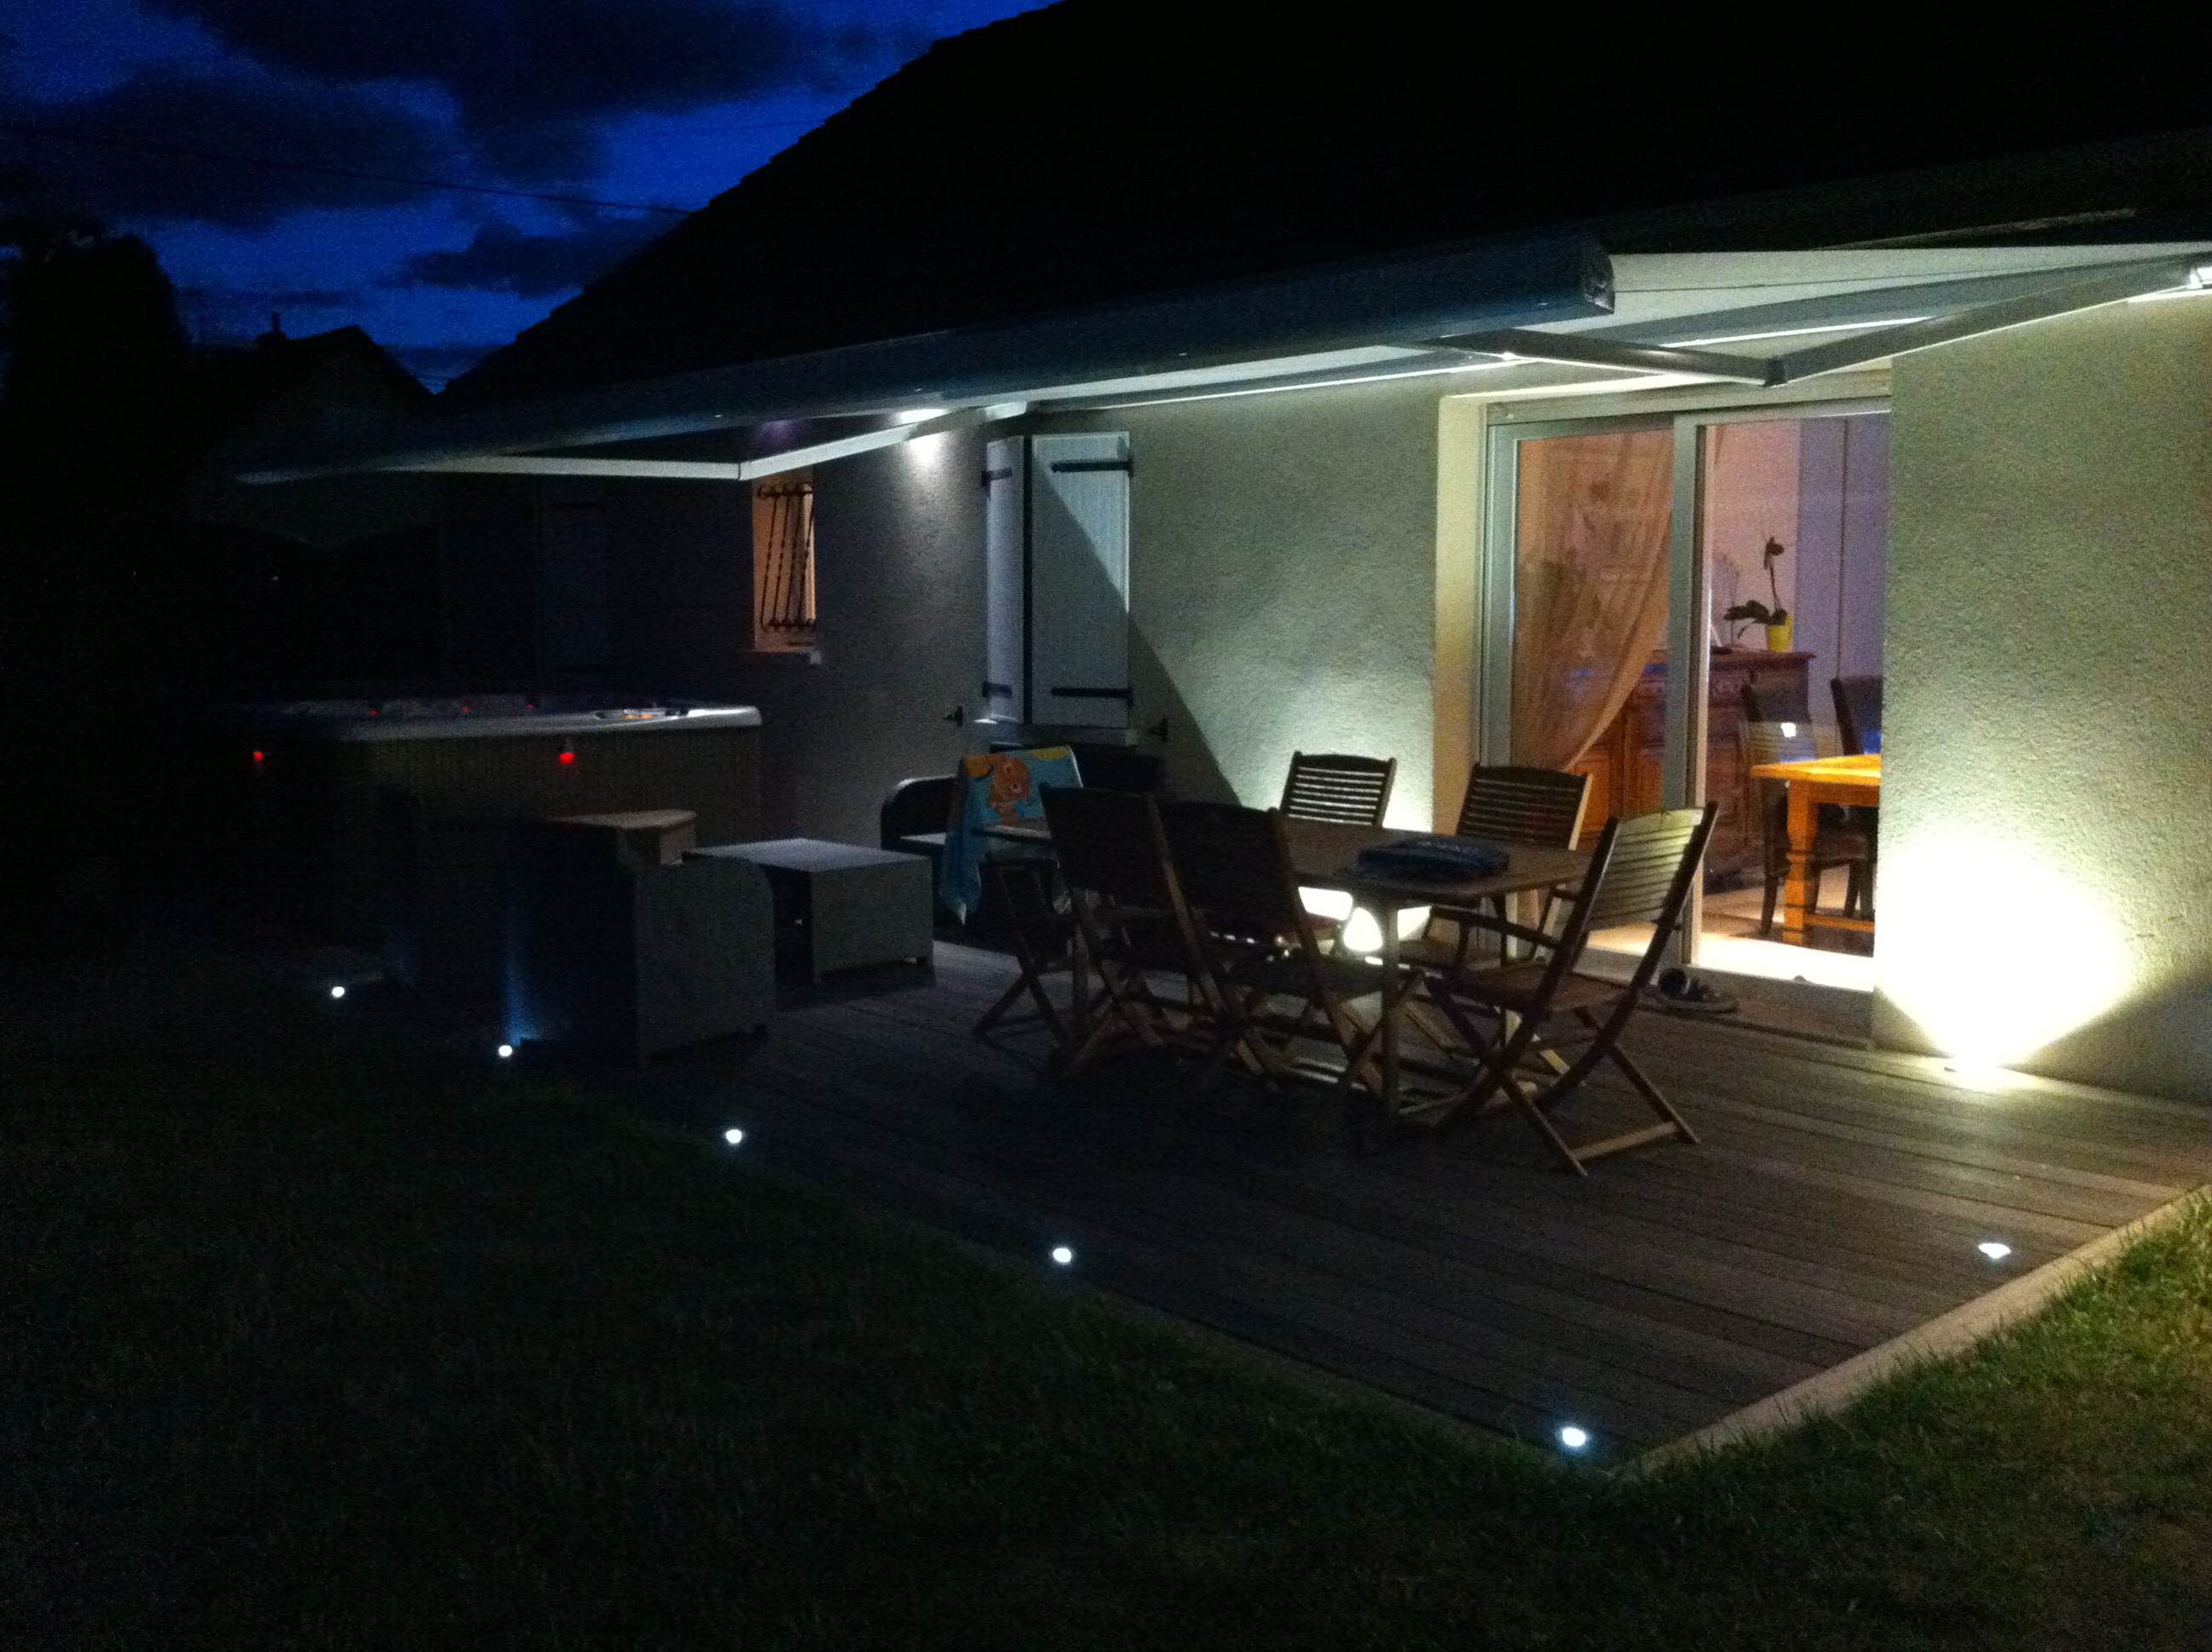 clairage terrasse led eclairage ext rieur On eclairage exterieur led terrasse